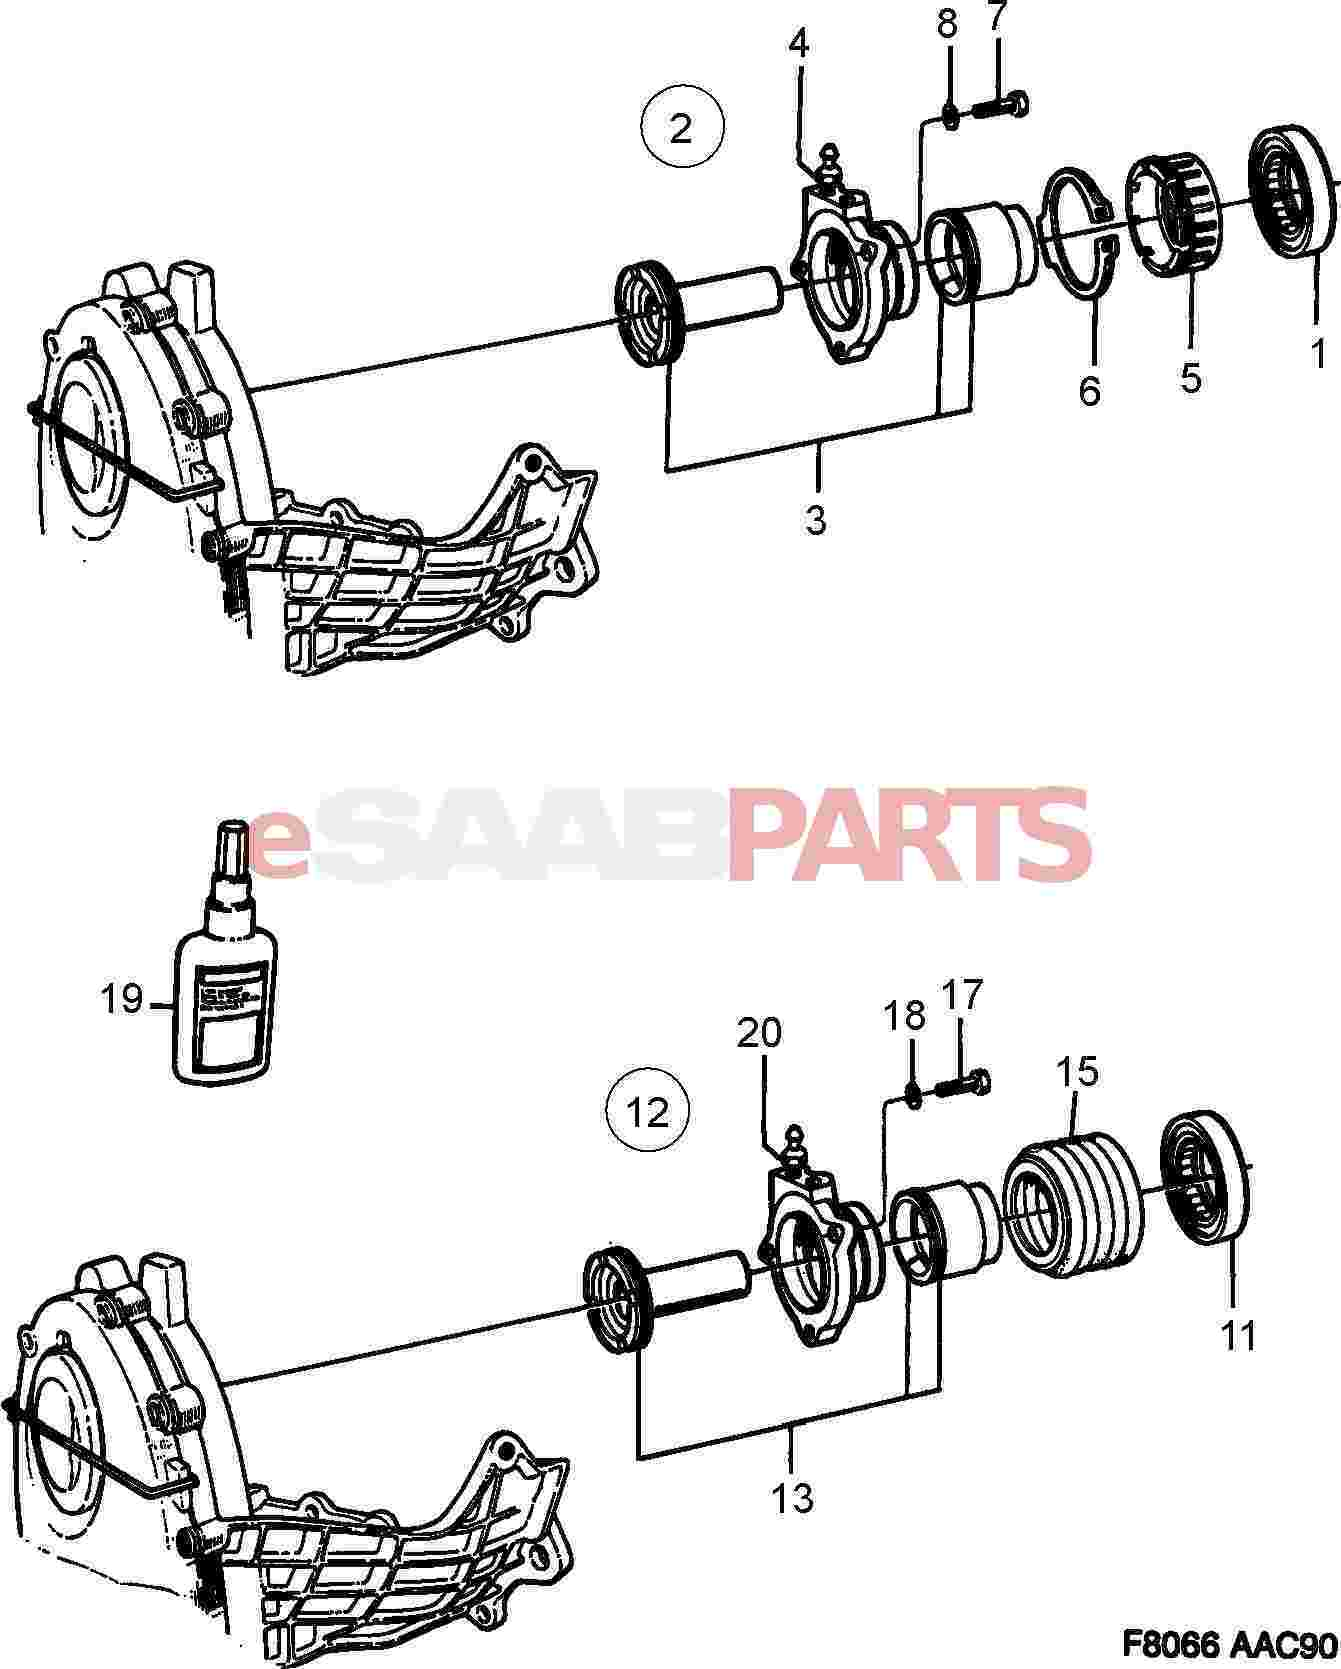 1994 Saab 900s Engine Diagram 1991 Saab 900 Steering